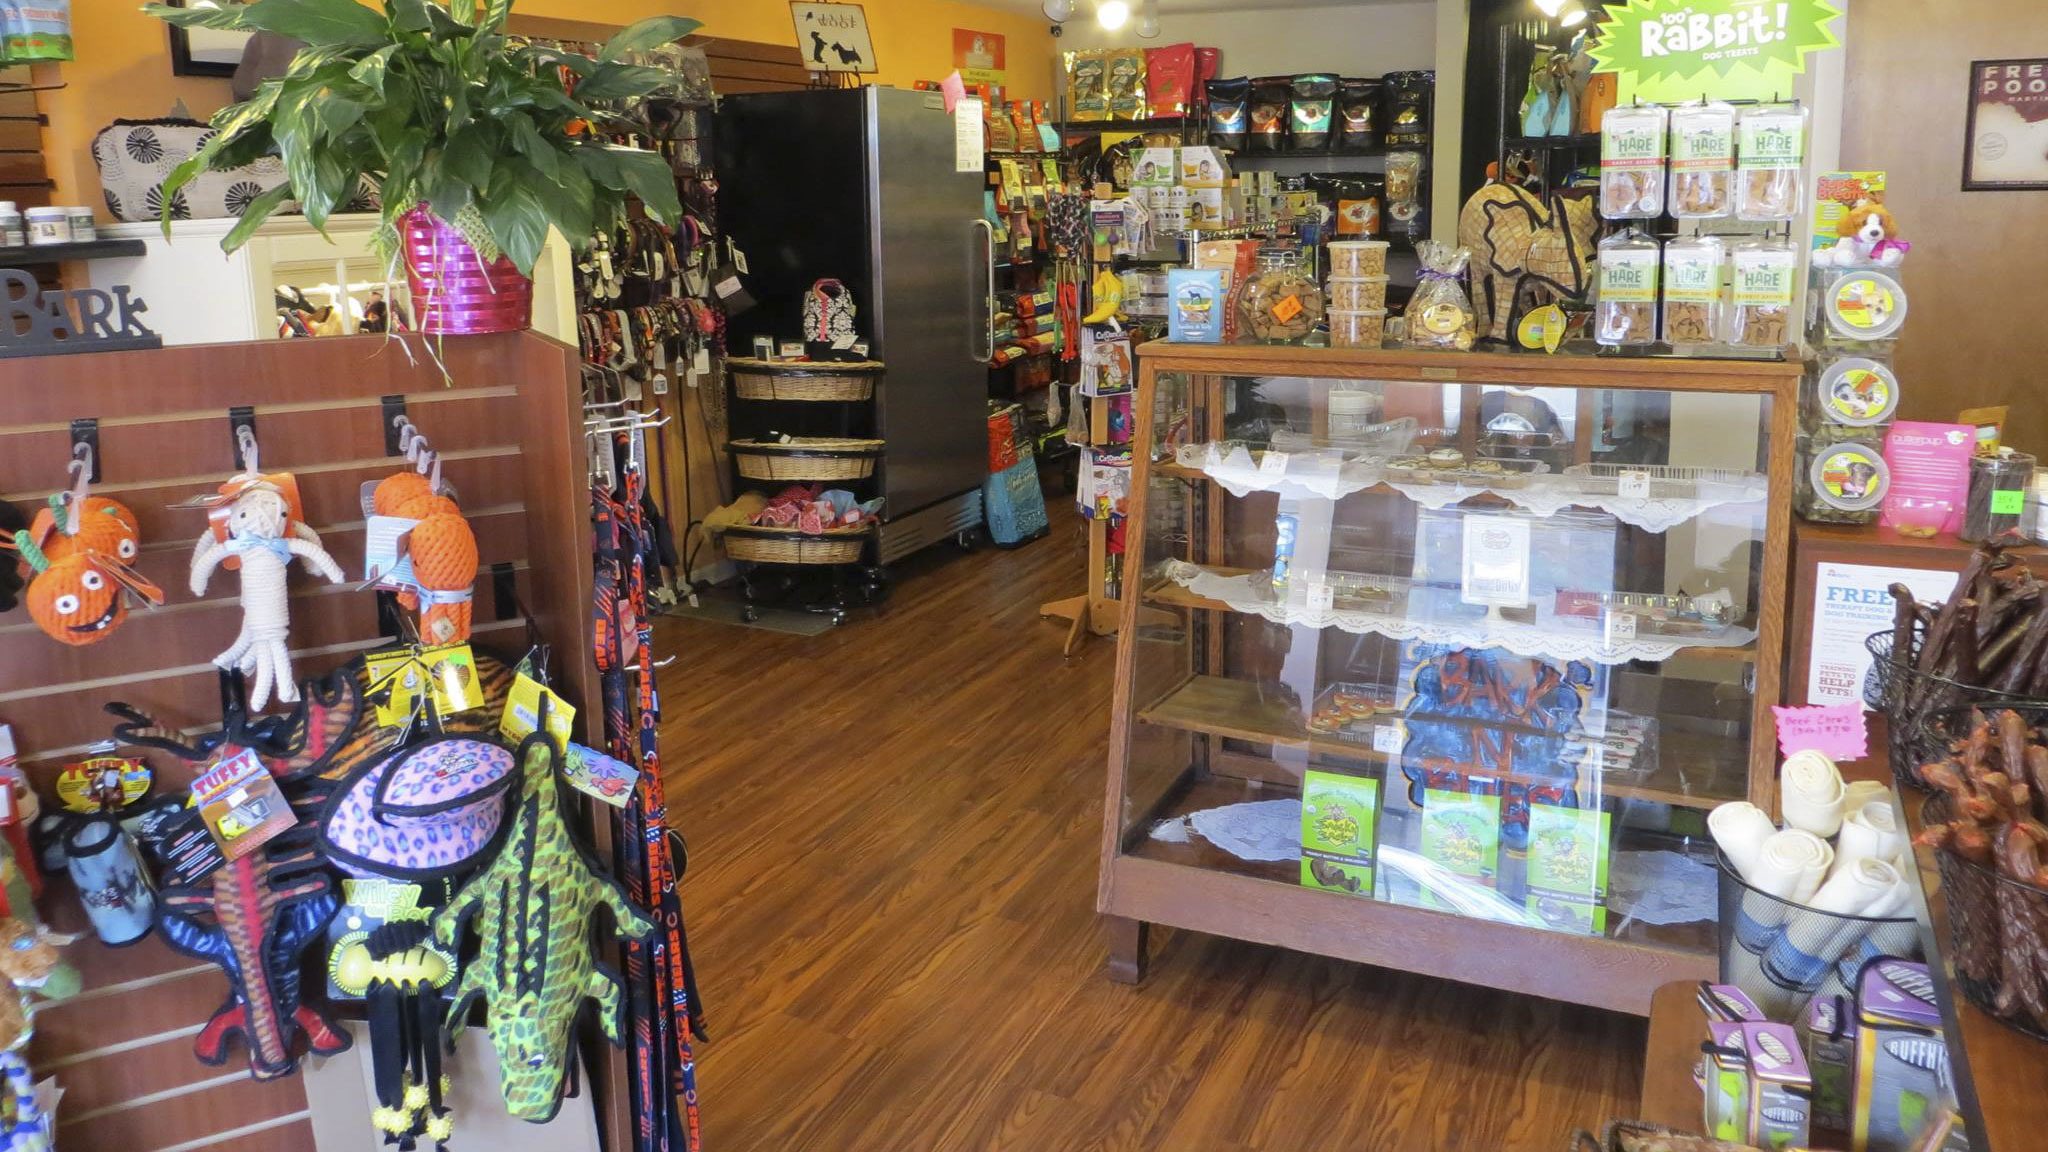 Pet stores in chicago for dog leashes cat collars and more for Top ten boutiques